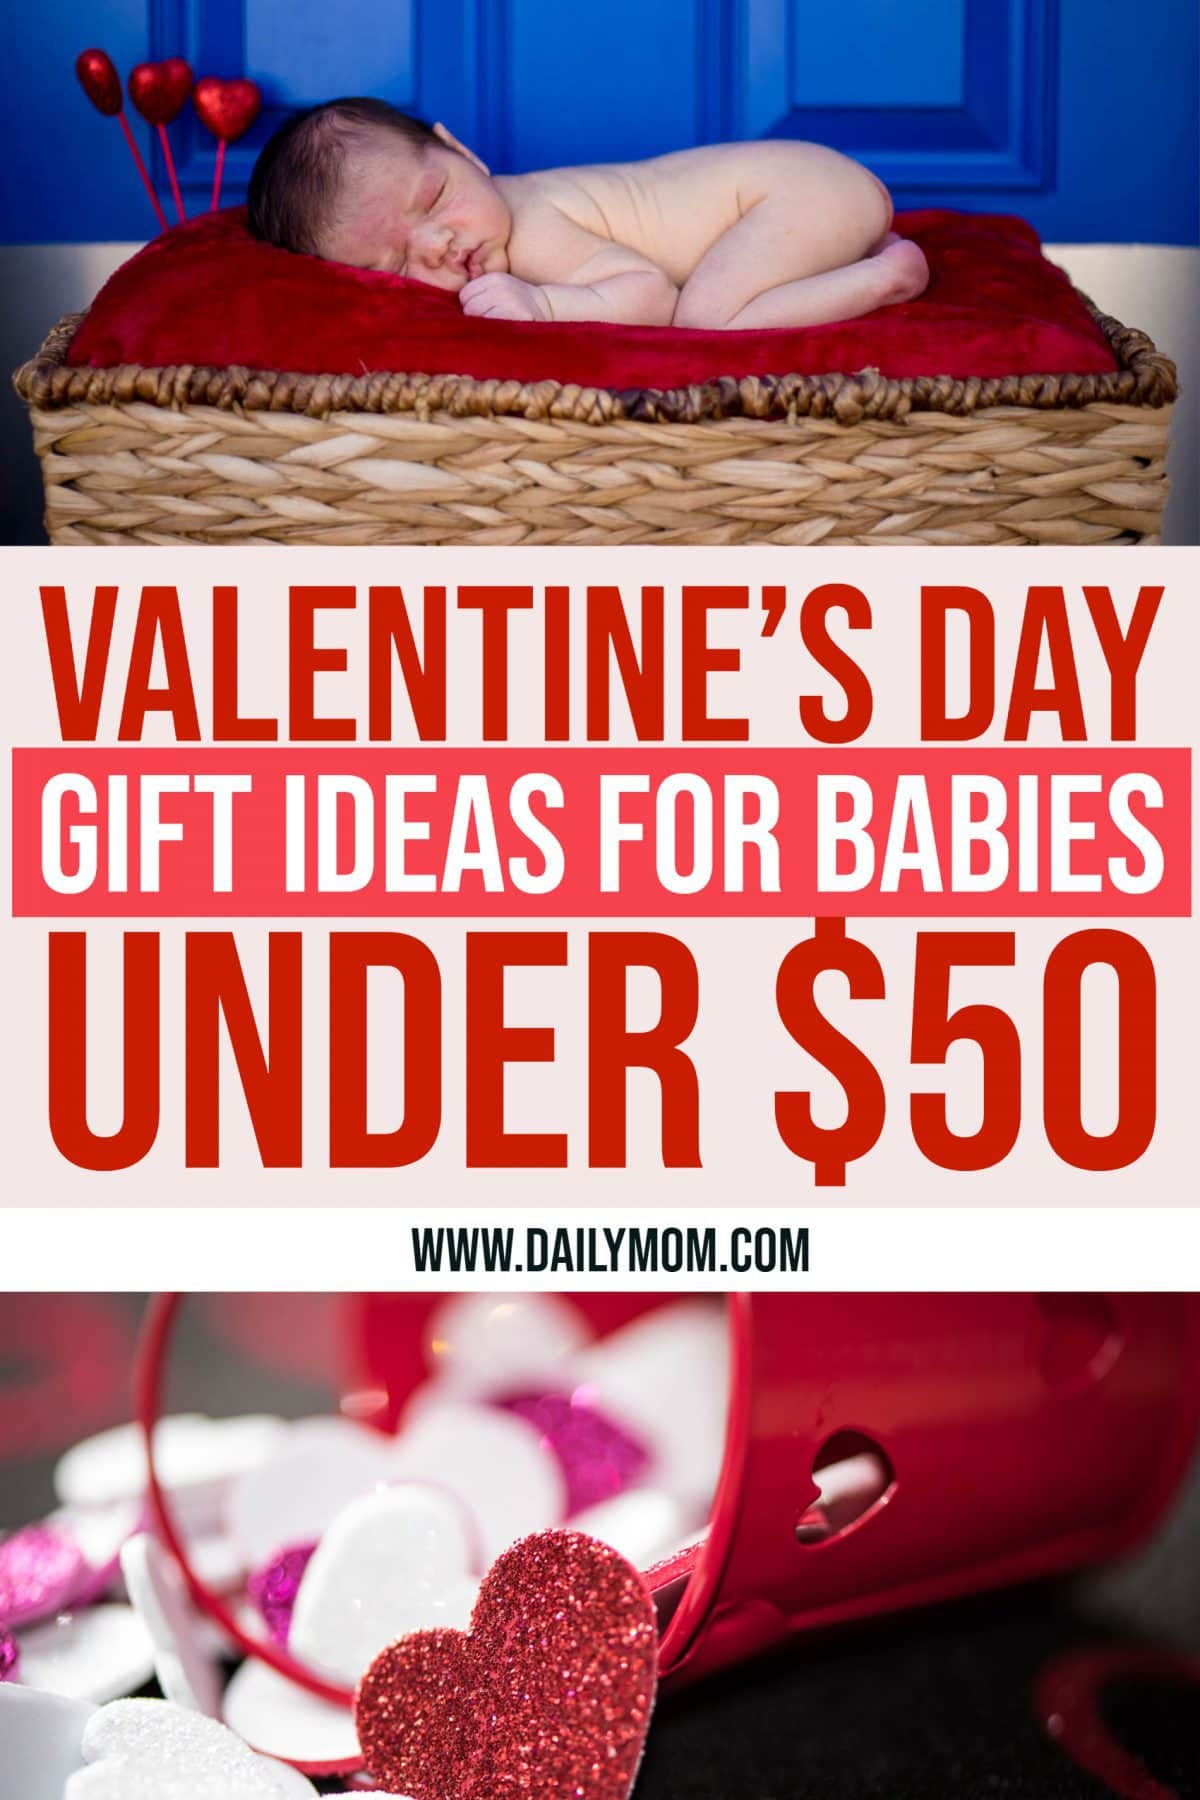 Daily Mom Parents Portal Valentines Gift Ideas For Babies And Toddler 1